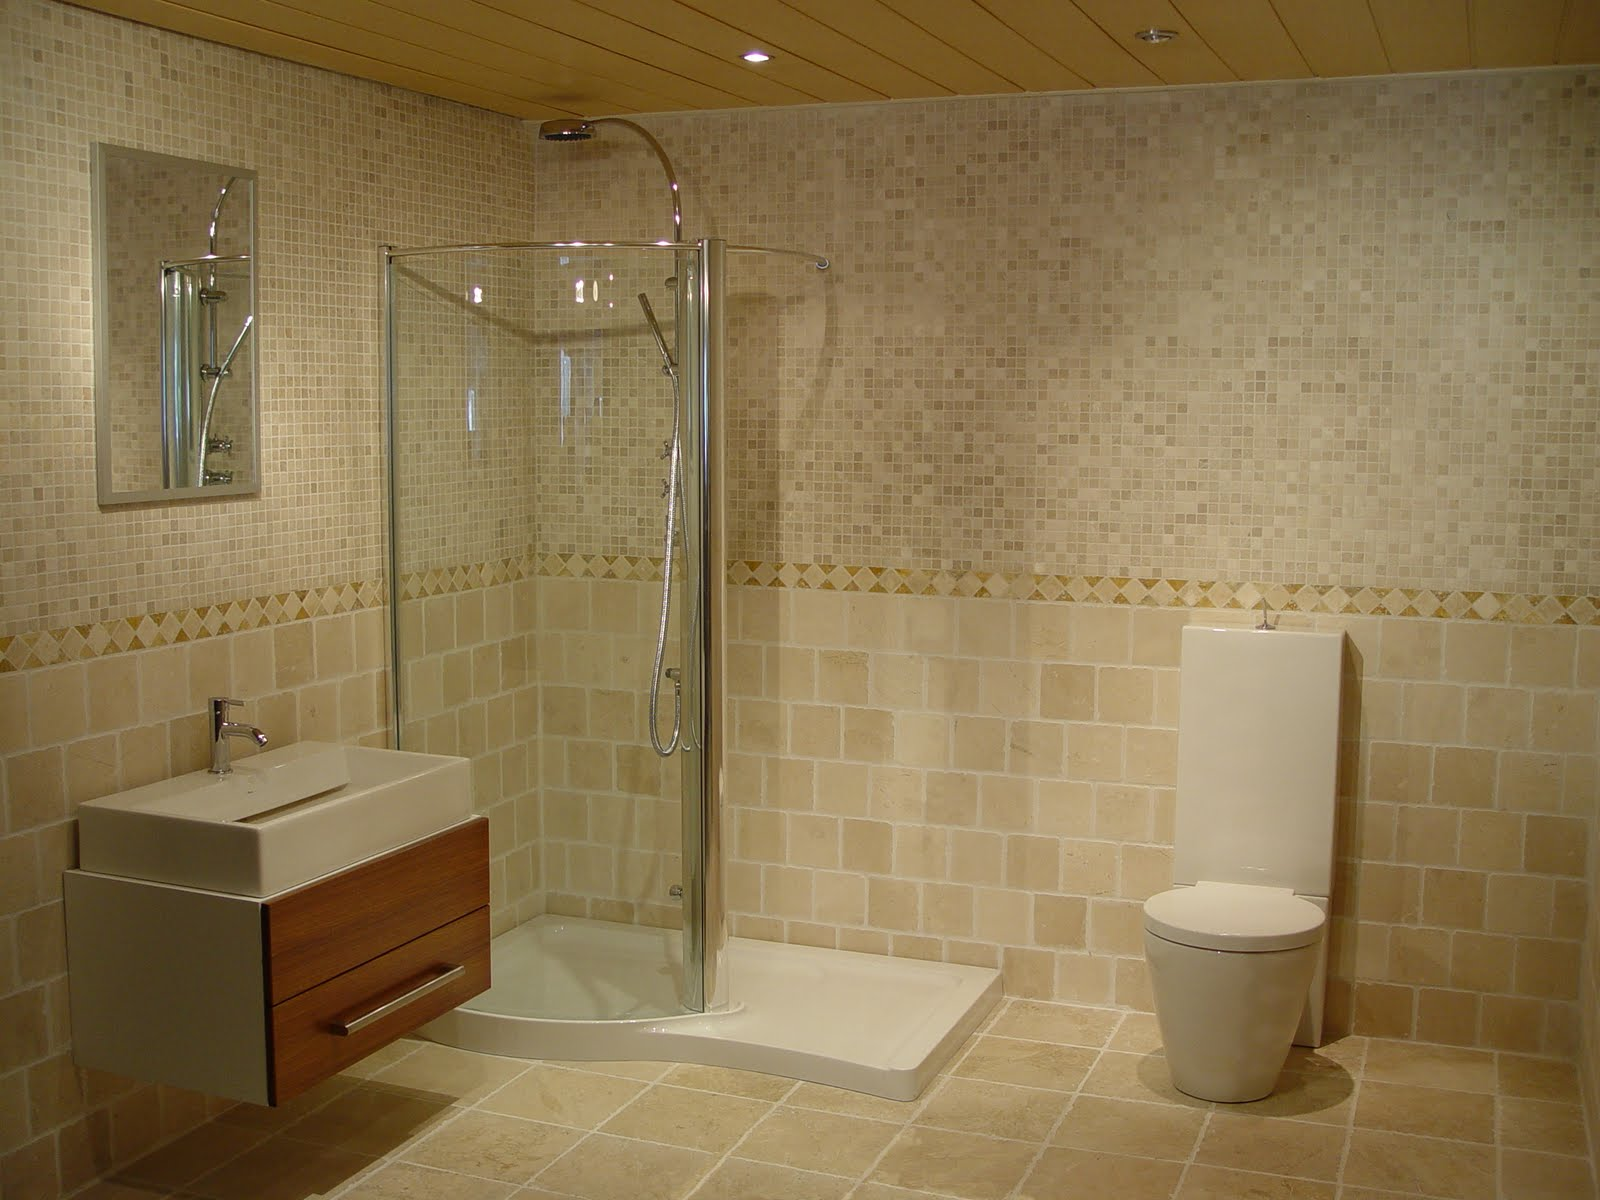 Superb Awesome Shower Area Also Neat Tile Bathroom Ideas Plus Vanity